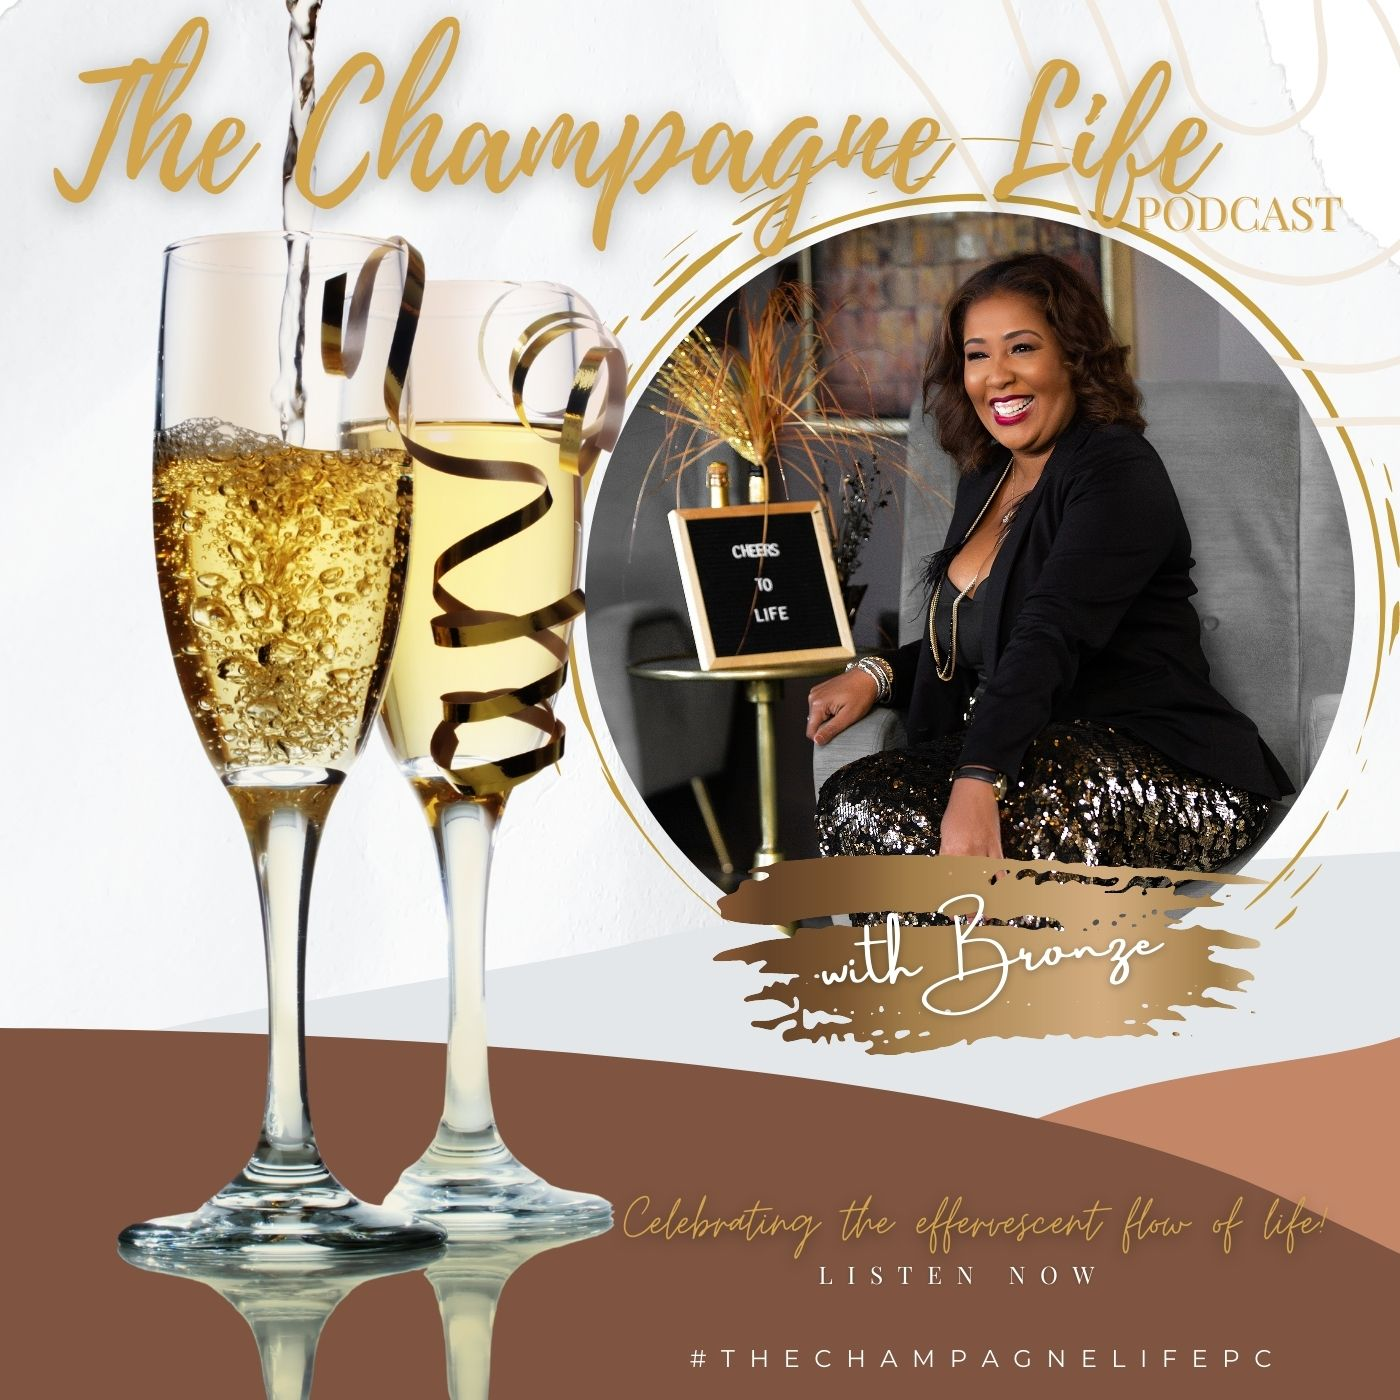 Artwork for podcast The Champagne Life